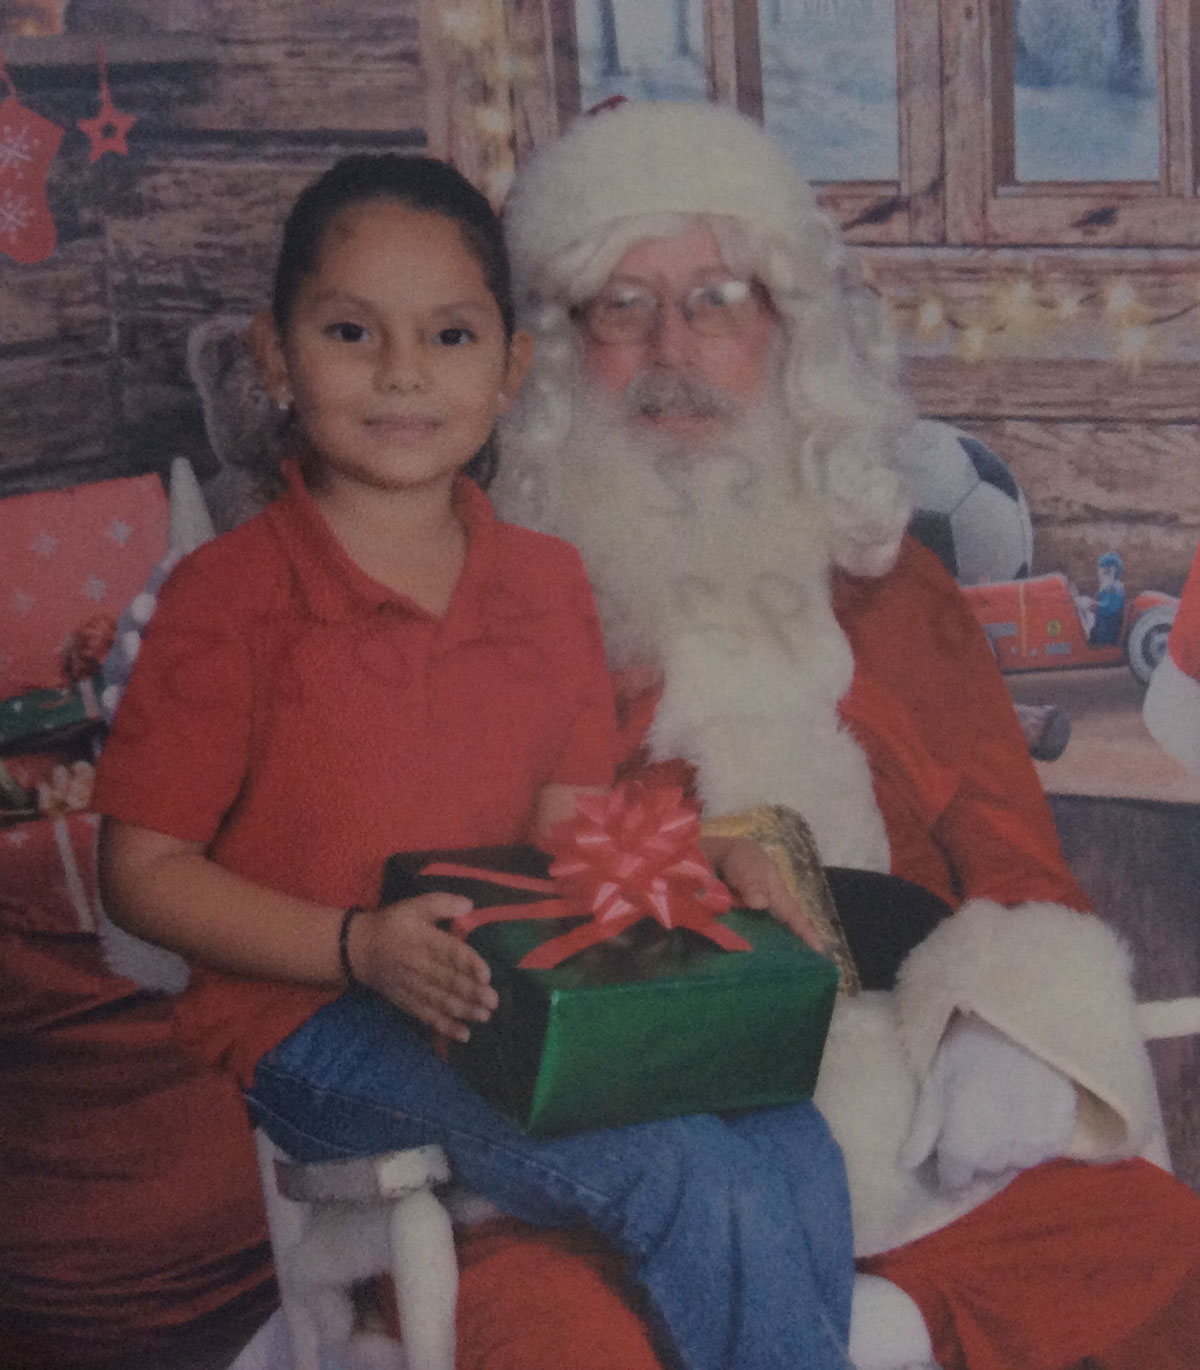 Little Katherin with Santa